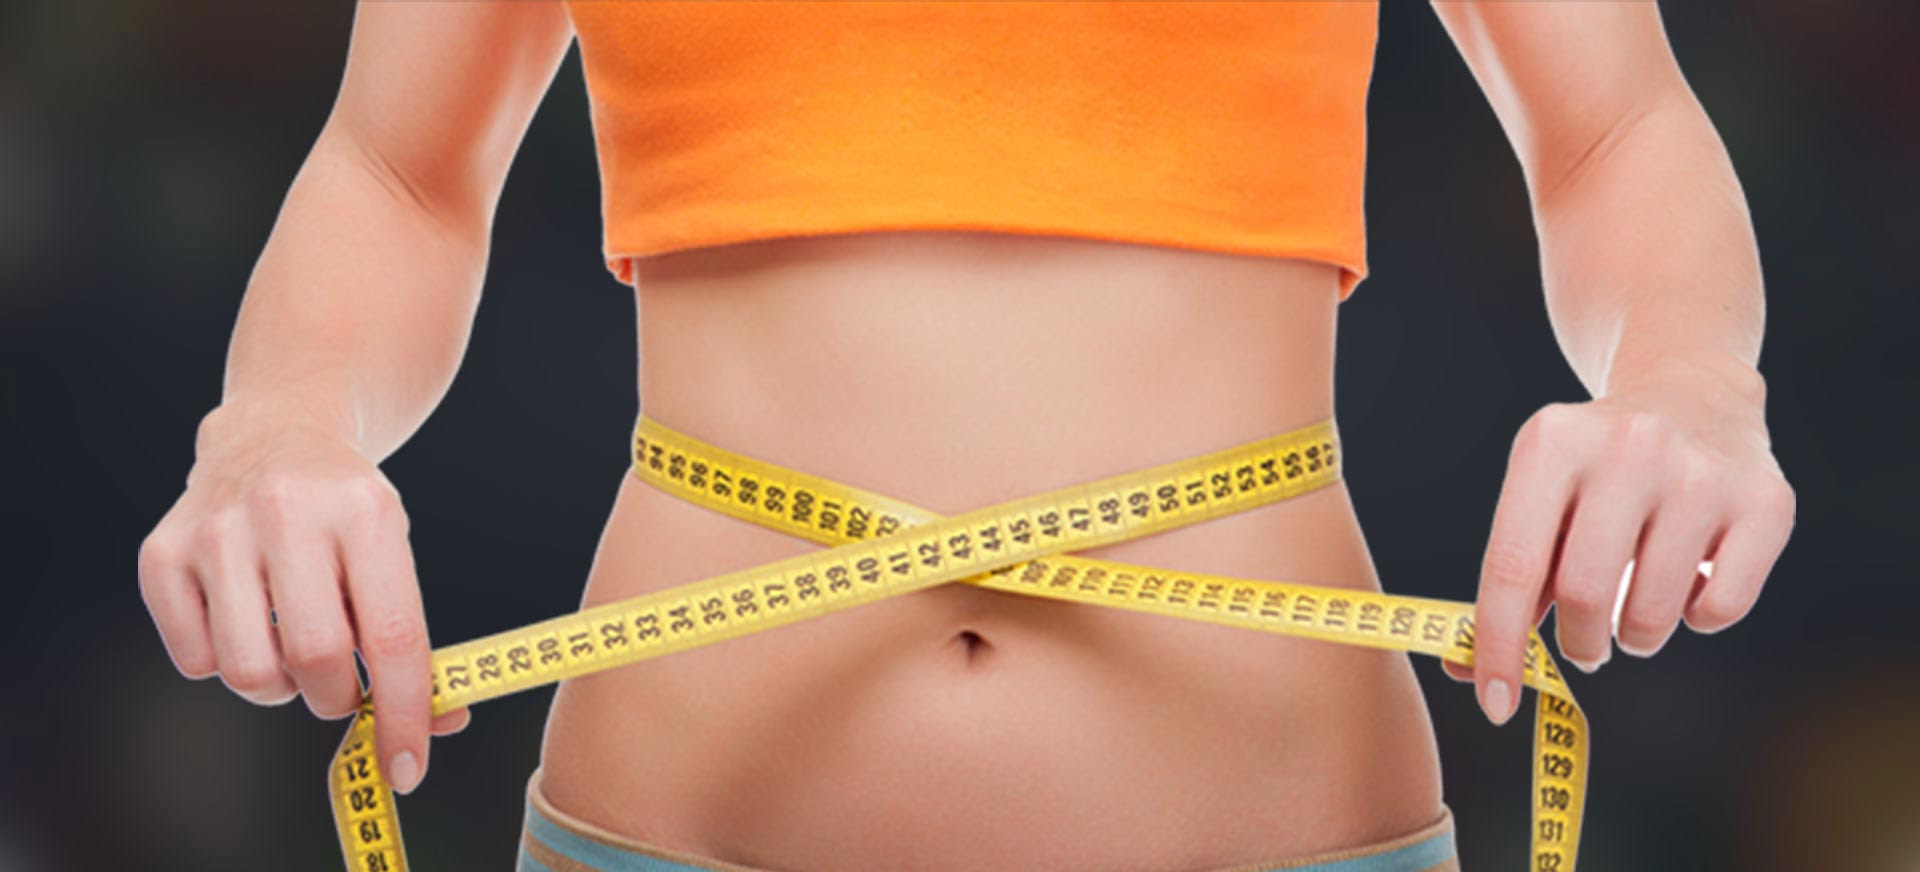 Weigh To Go Weight Loss Centers Knoxville Weight Loss Clinic Weight Loss Centers In Knoxville Tn Sevierville Kingston And Onedia Weight Loss Clinics